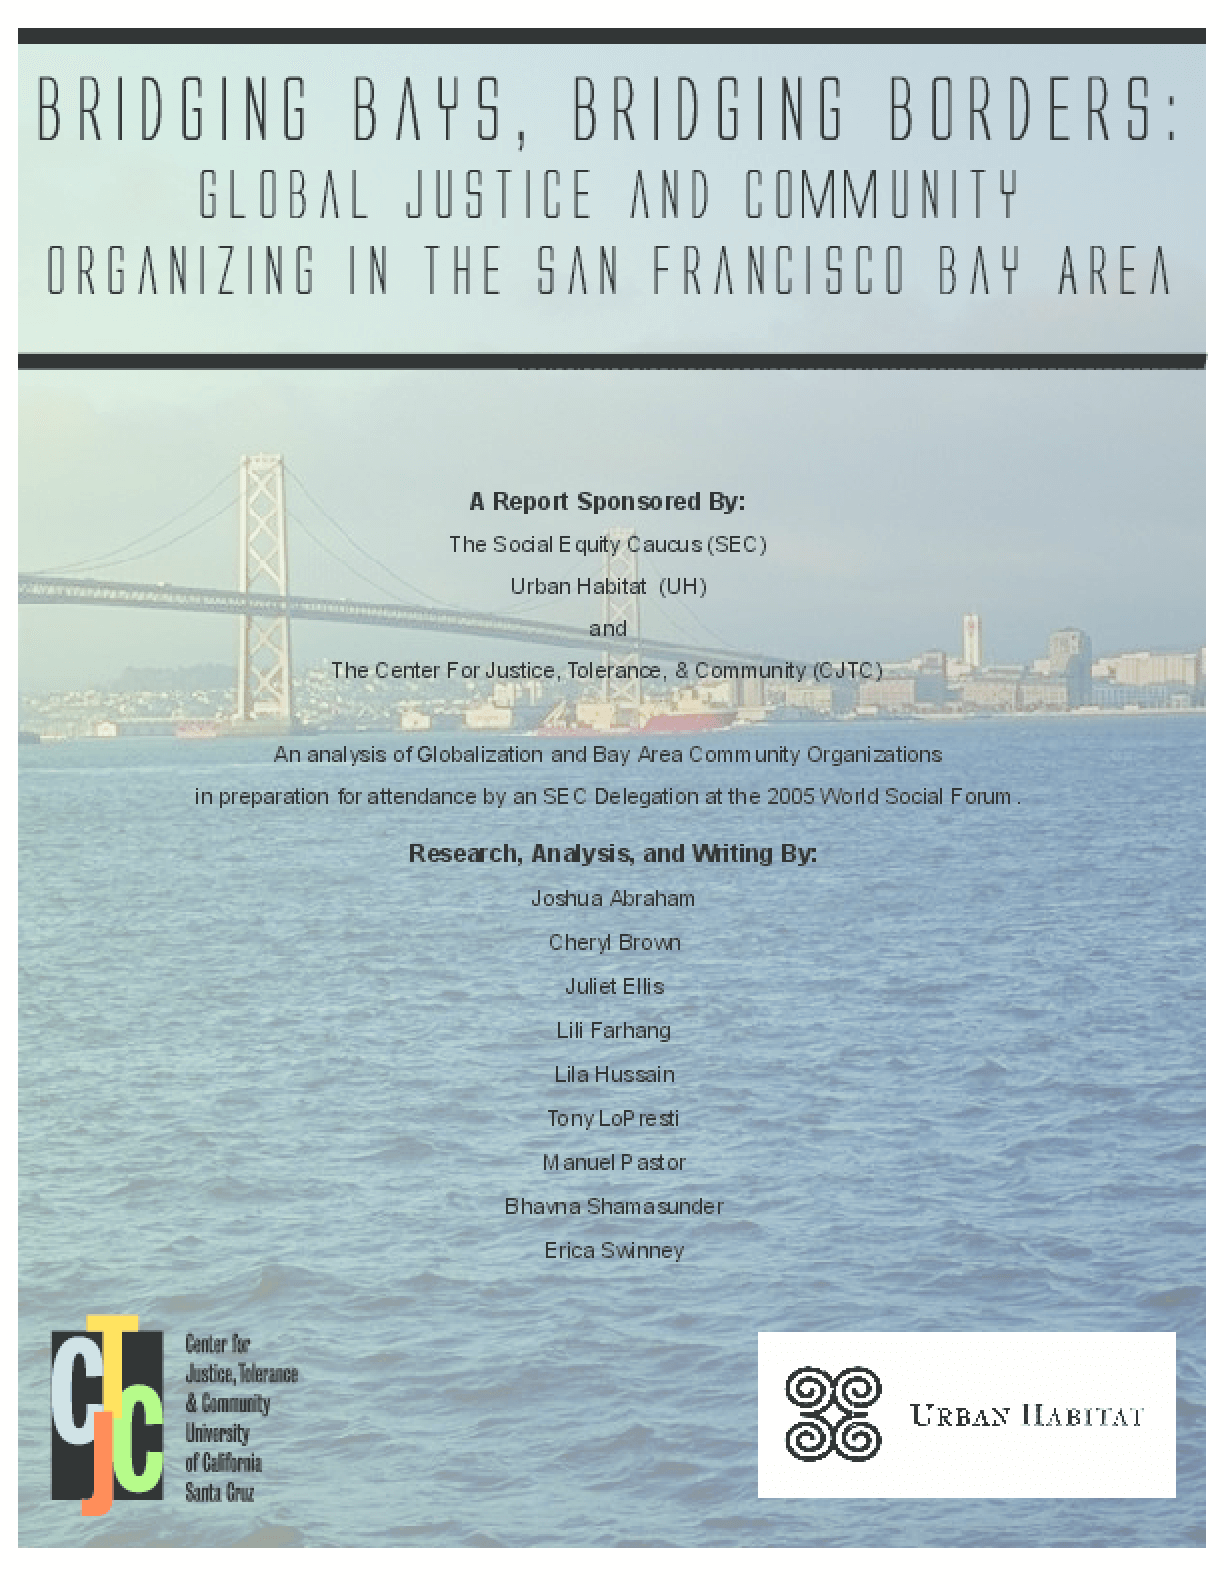 Bridging Bays, Bridging Borders: Global Justice and Community Organizing in the San Francisco Bay Area